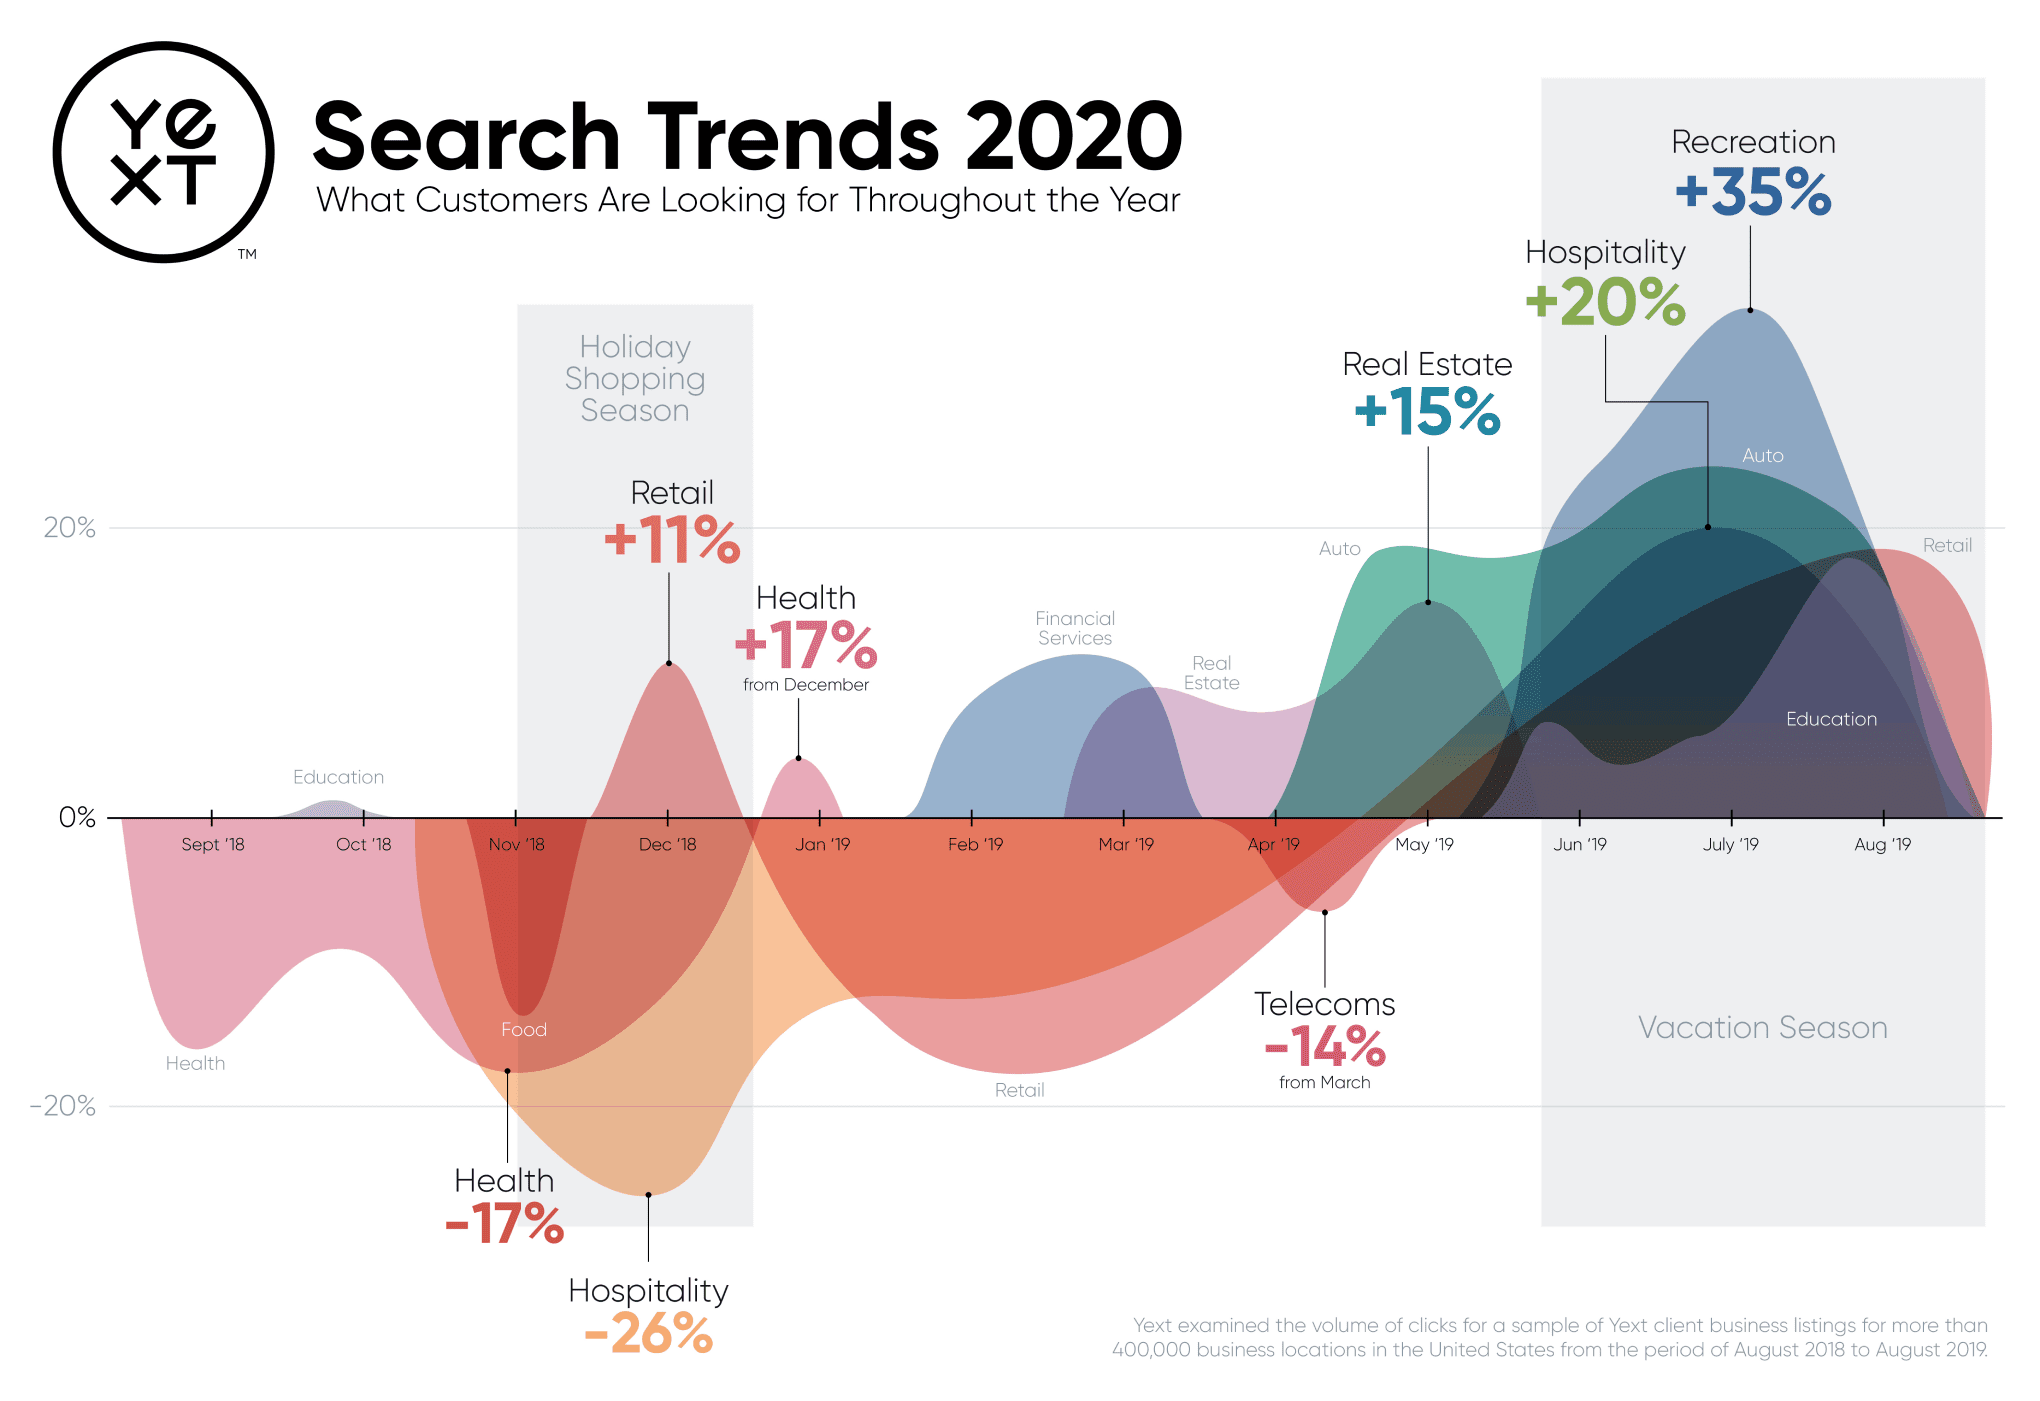 Search Trends 2020: What Customers Are Looking for Throughout the Year